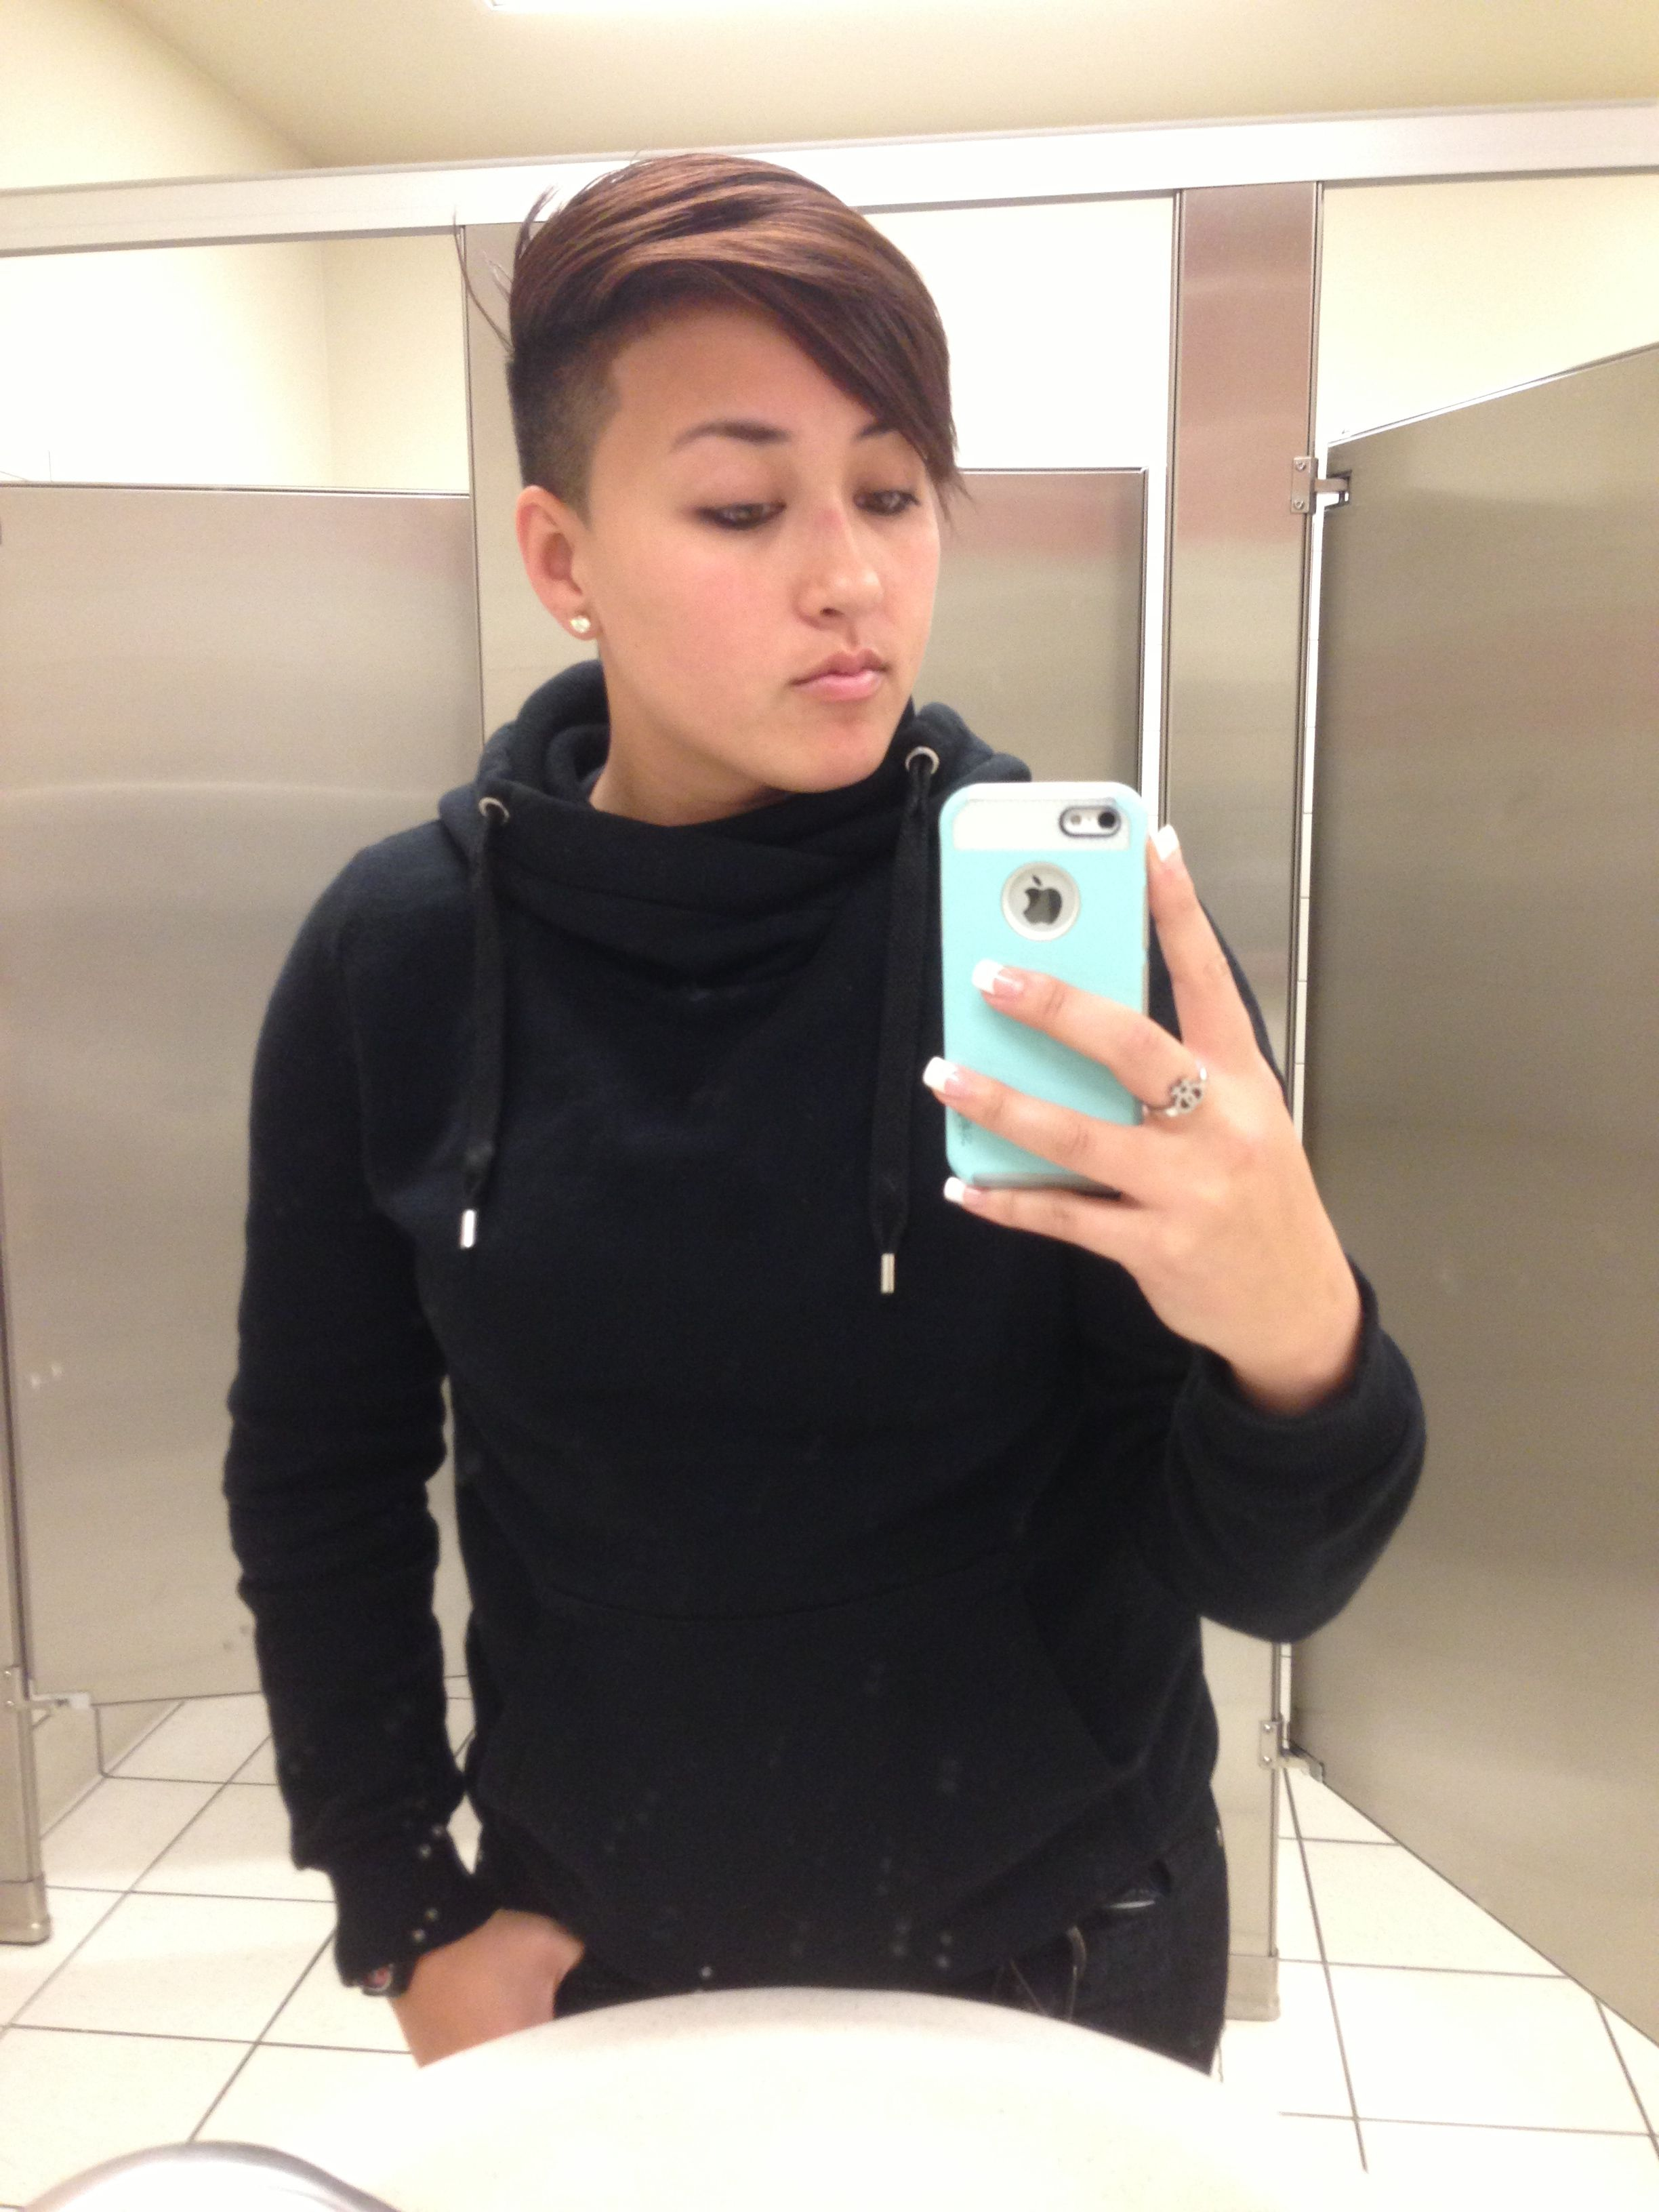 Lesbians with short haircuts